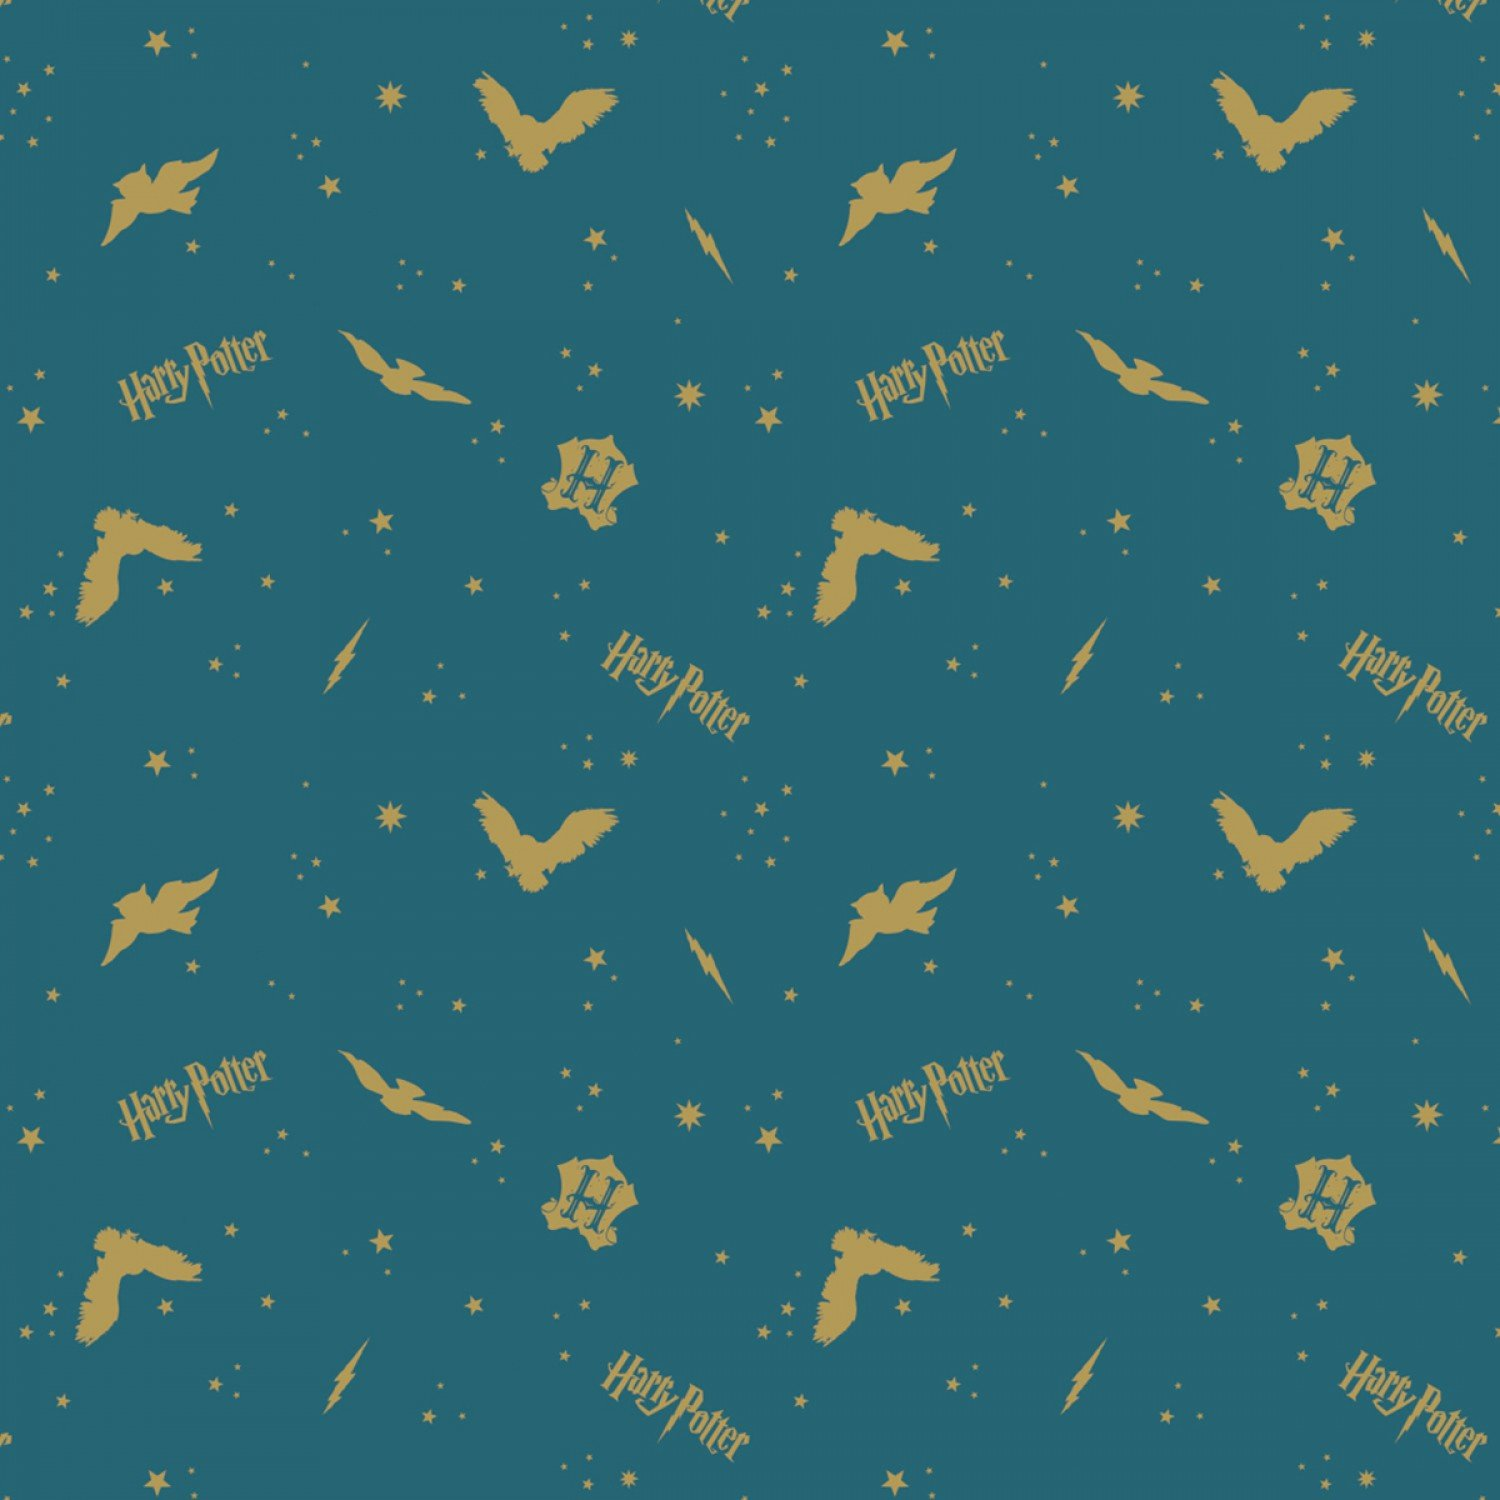 Foust Textiles - Harry Potter - Wizarding World - Assets w/Metallic on Flannel - Teal In the Night Sky